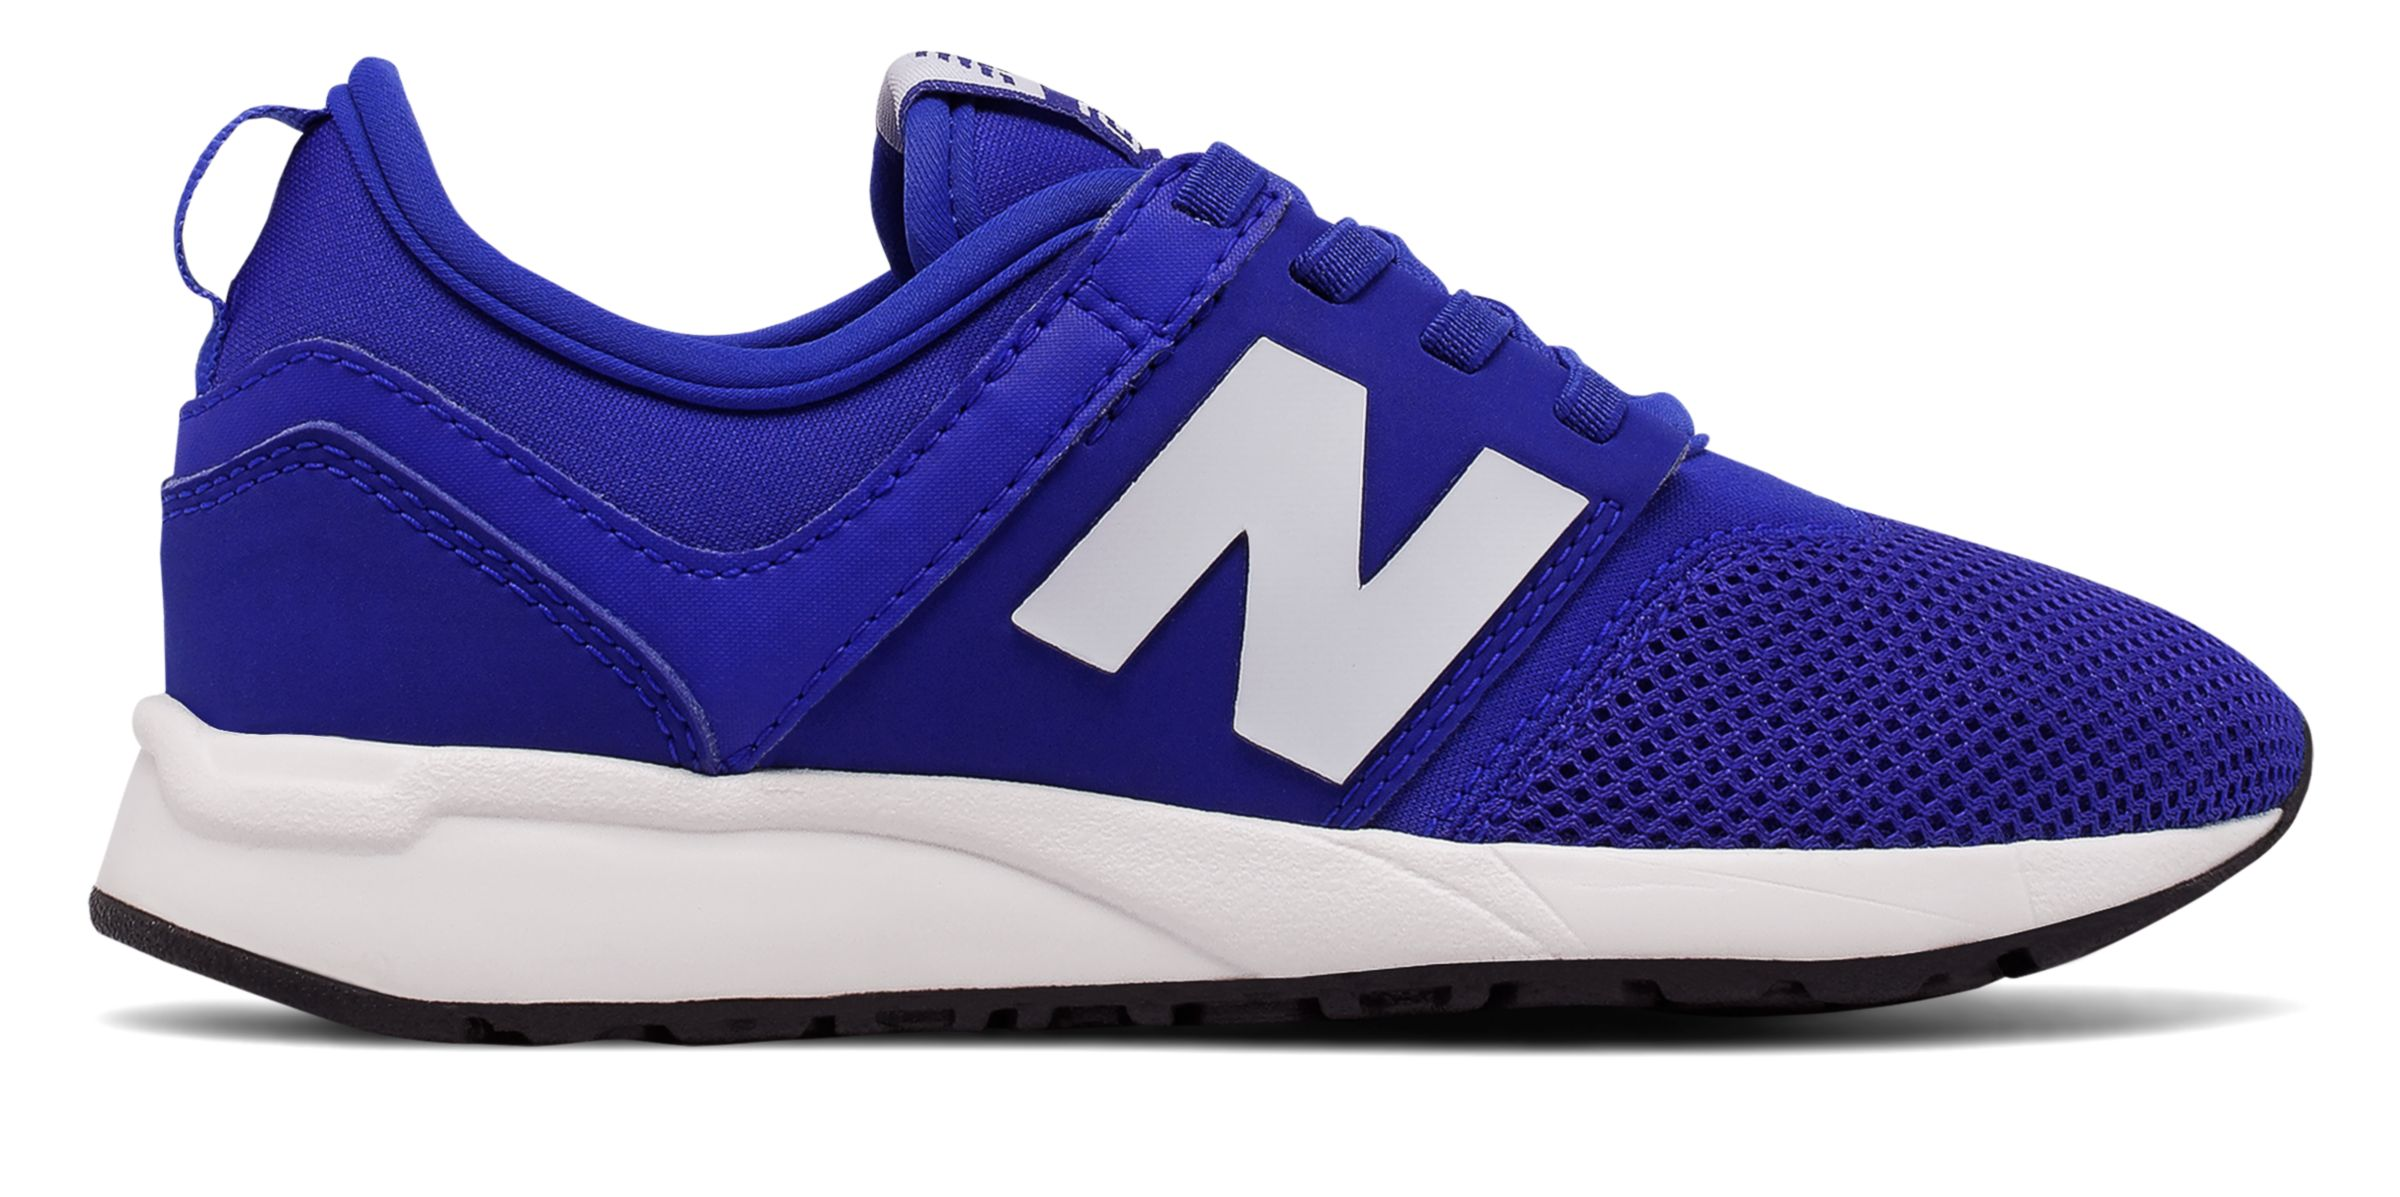 NB 247 New Balance, Blue with White